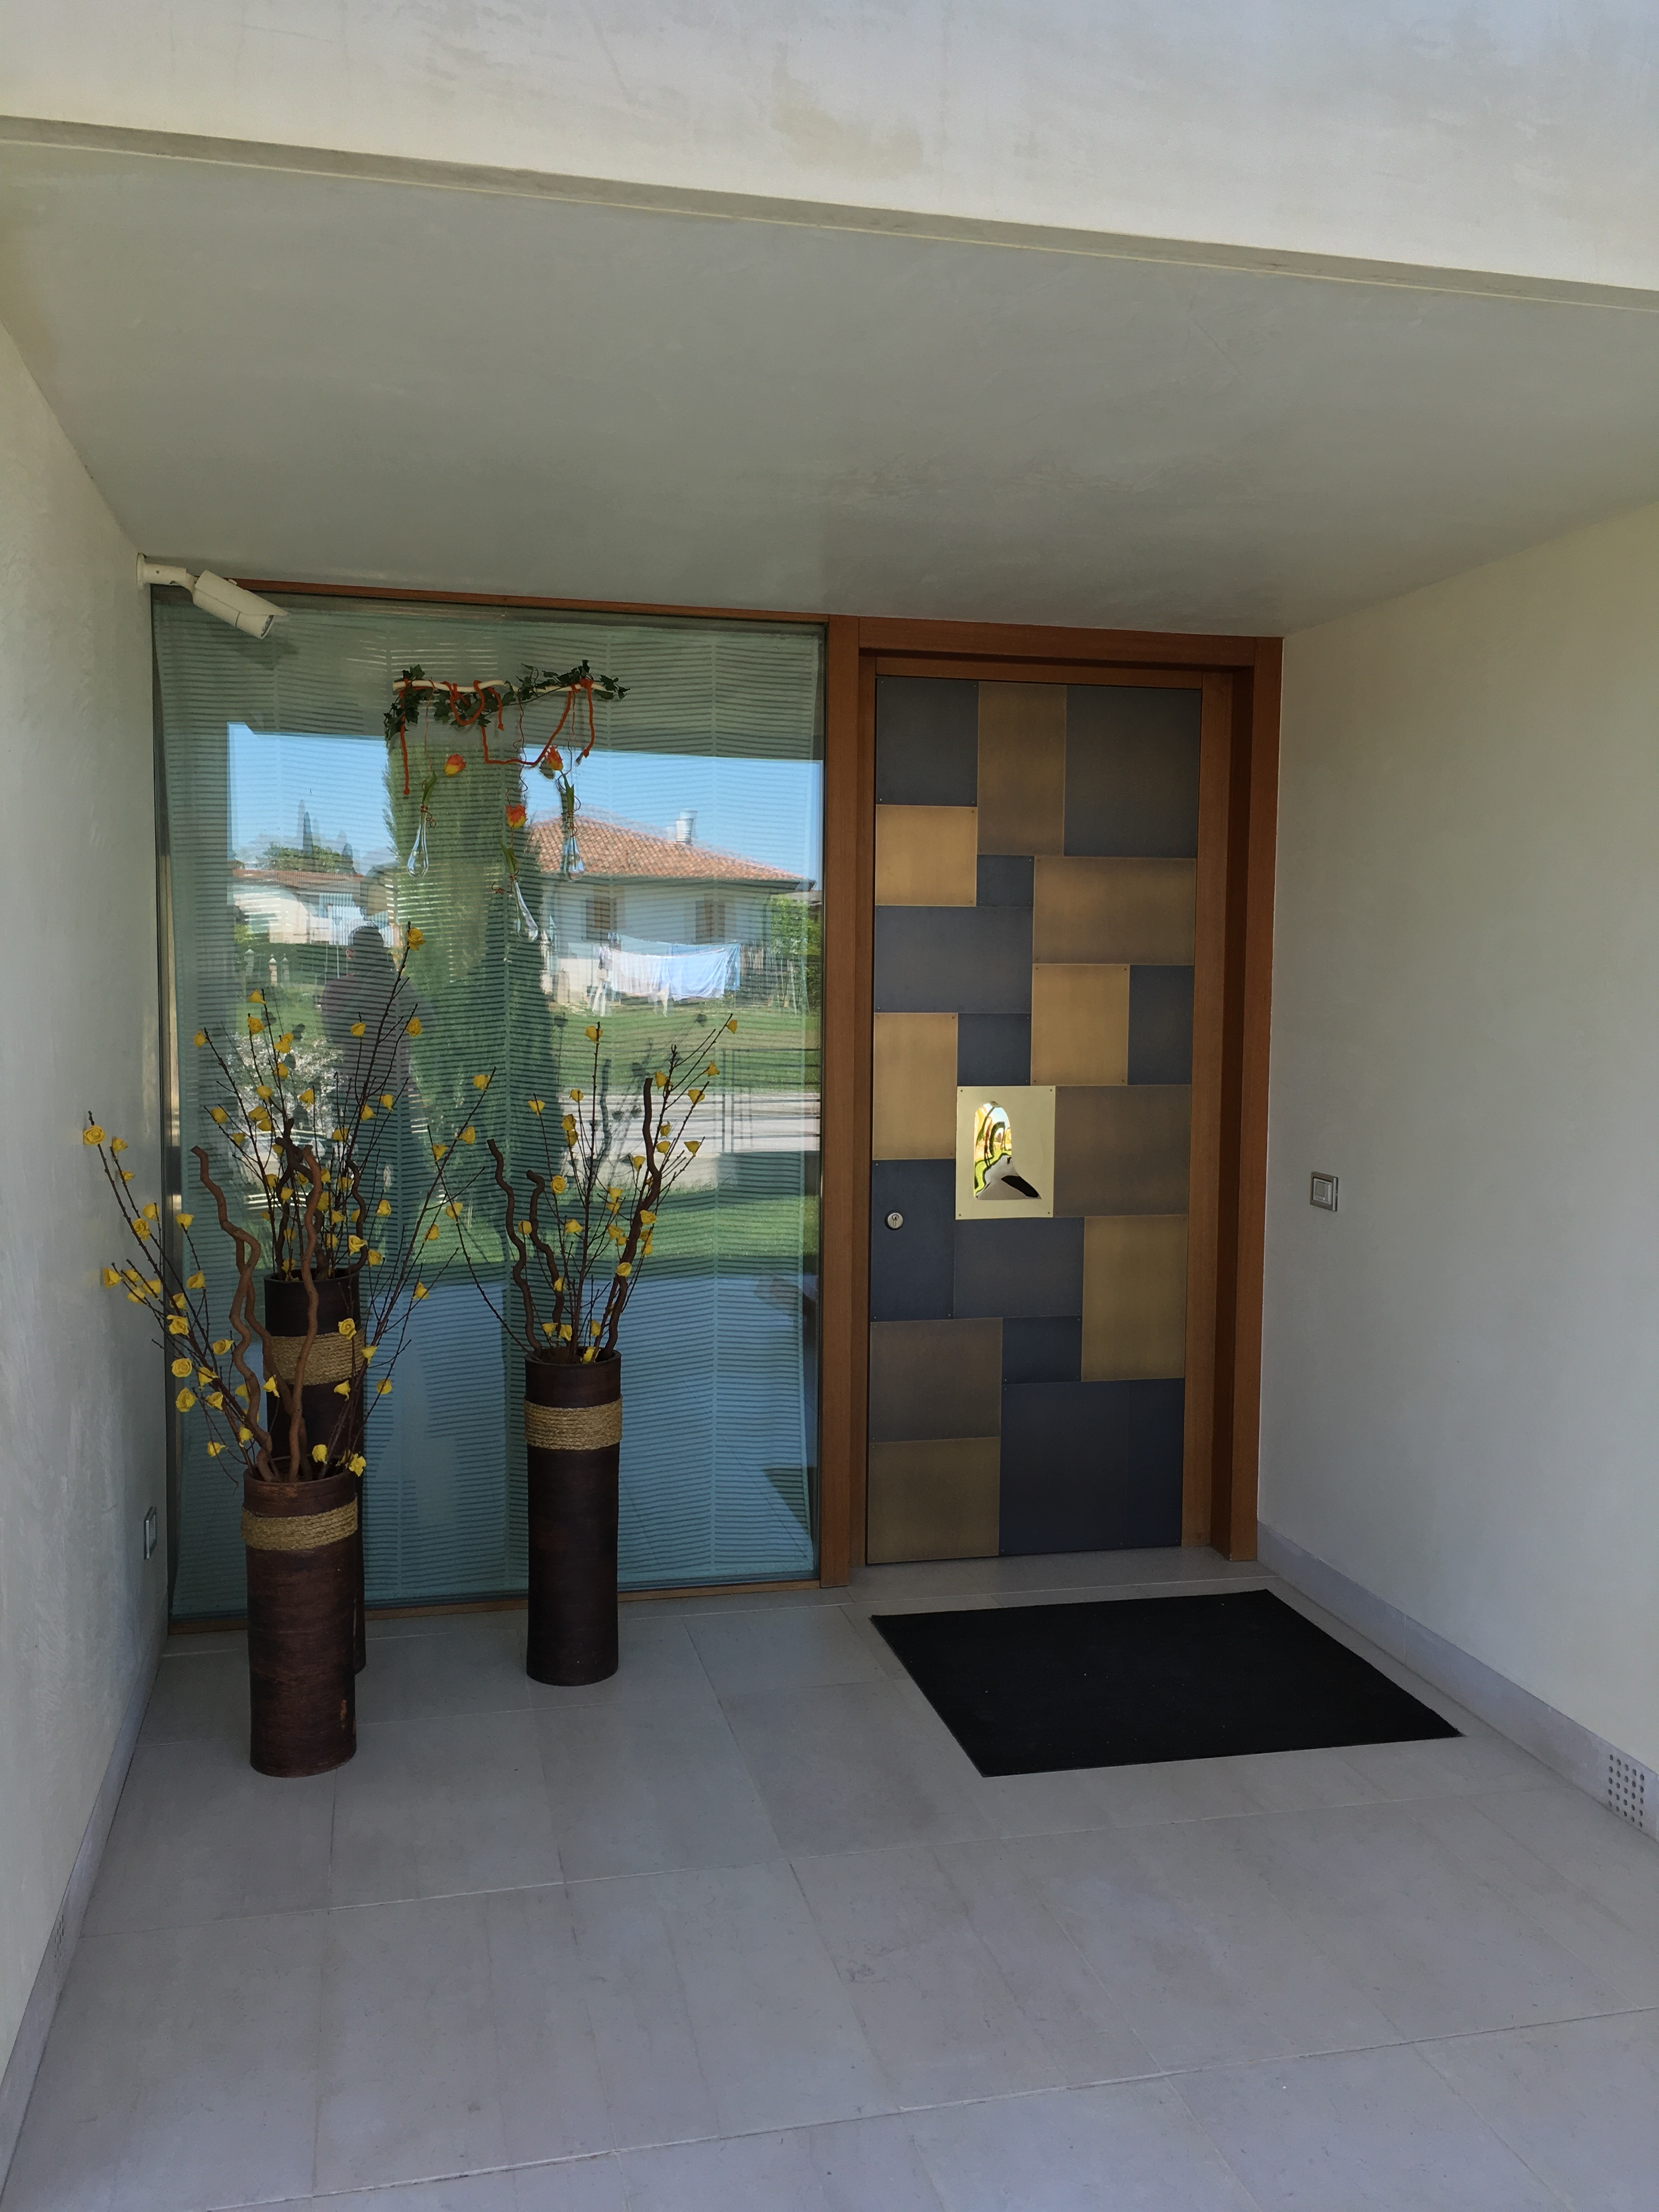 Come restaurare una vecchia porta in legno lormet steel for Porte decorate antiche